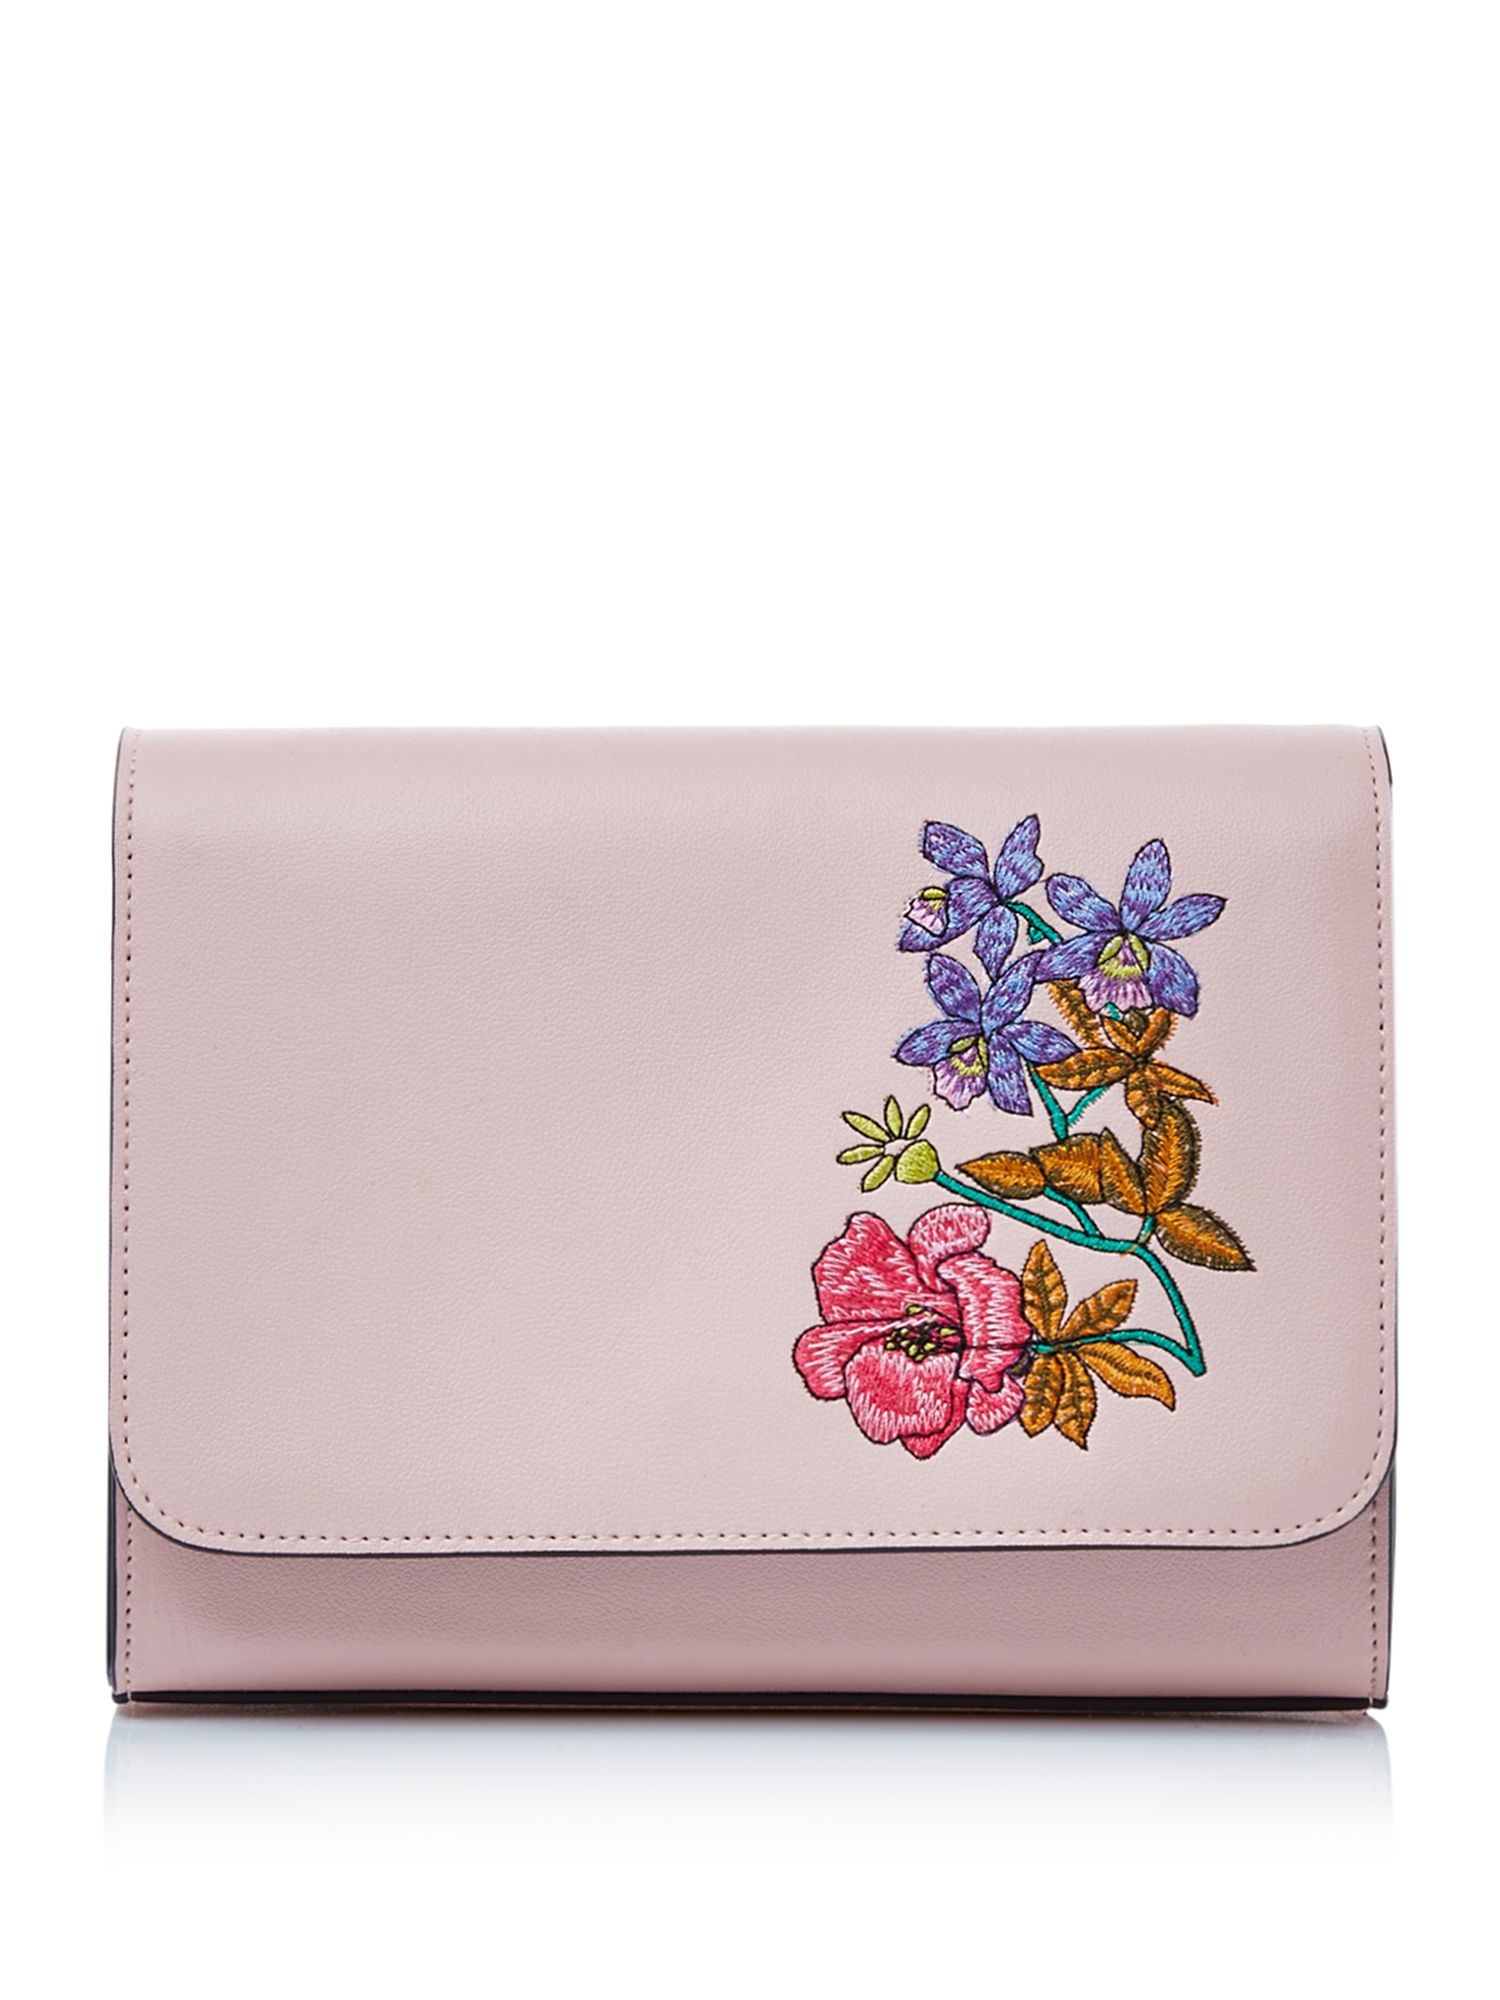 Therapy Floral Rushton Crossbody Bag, Nude